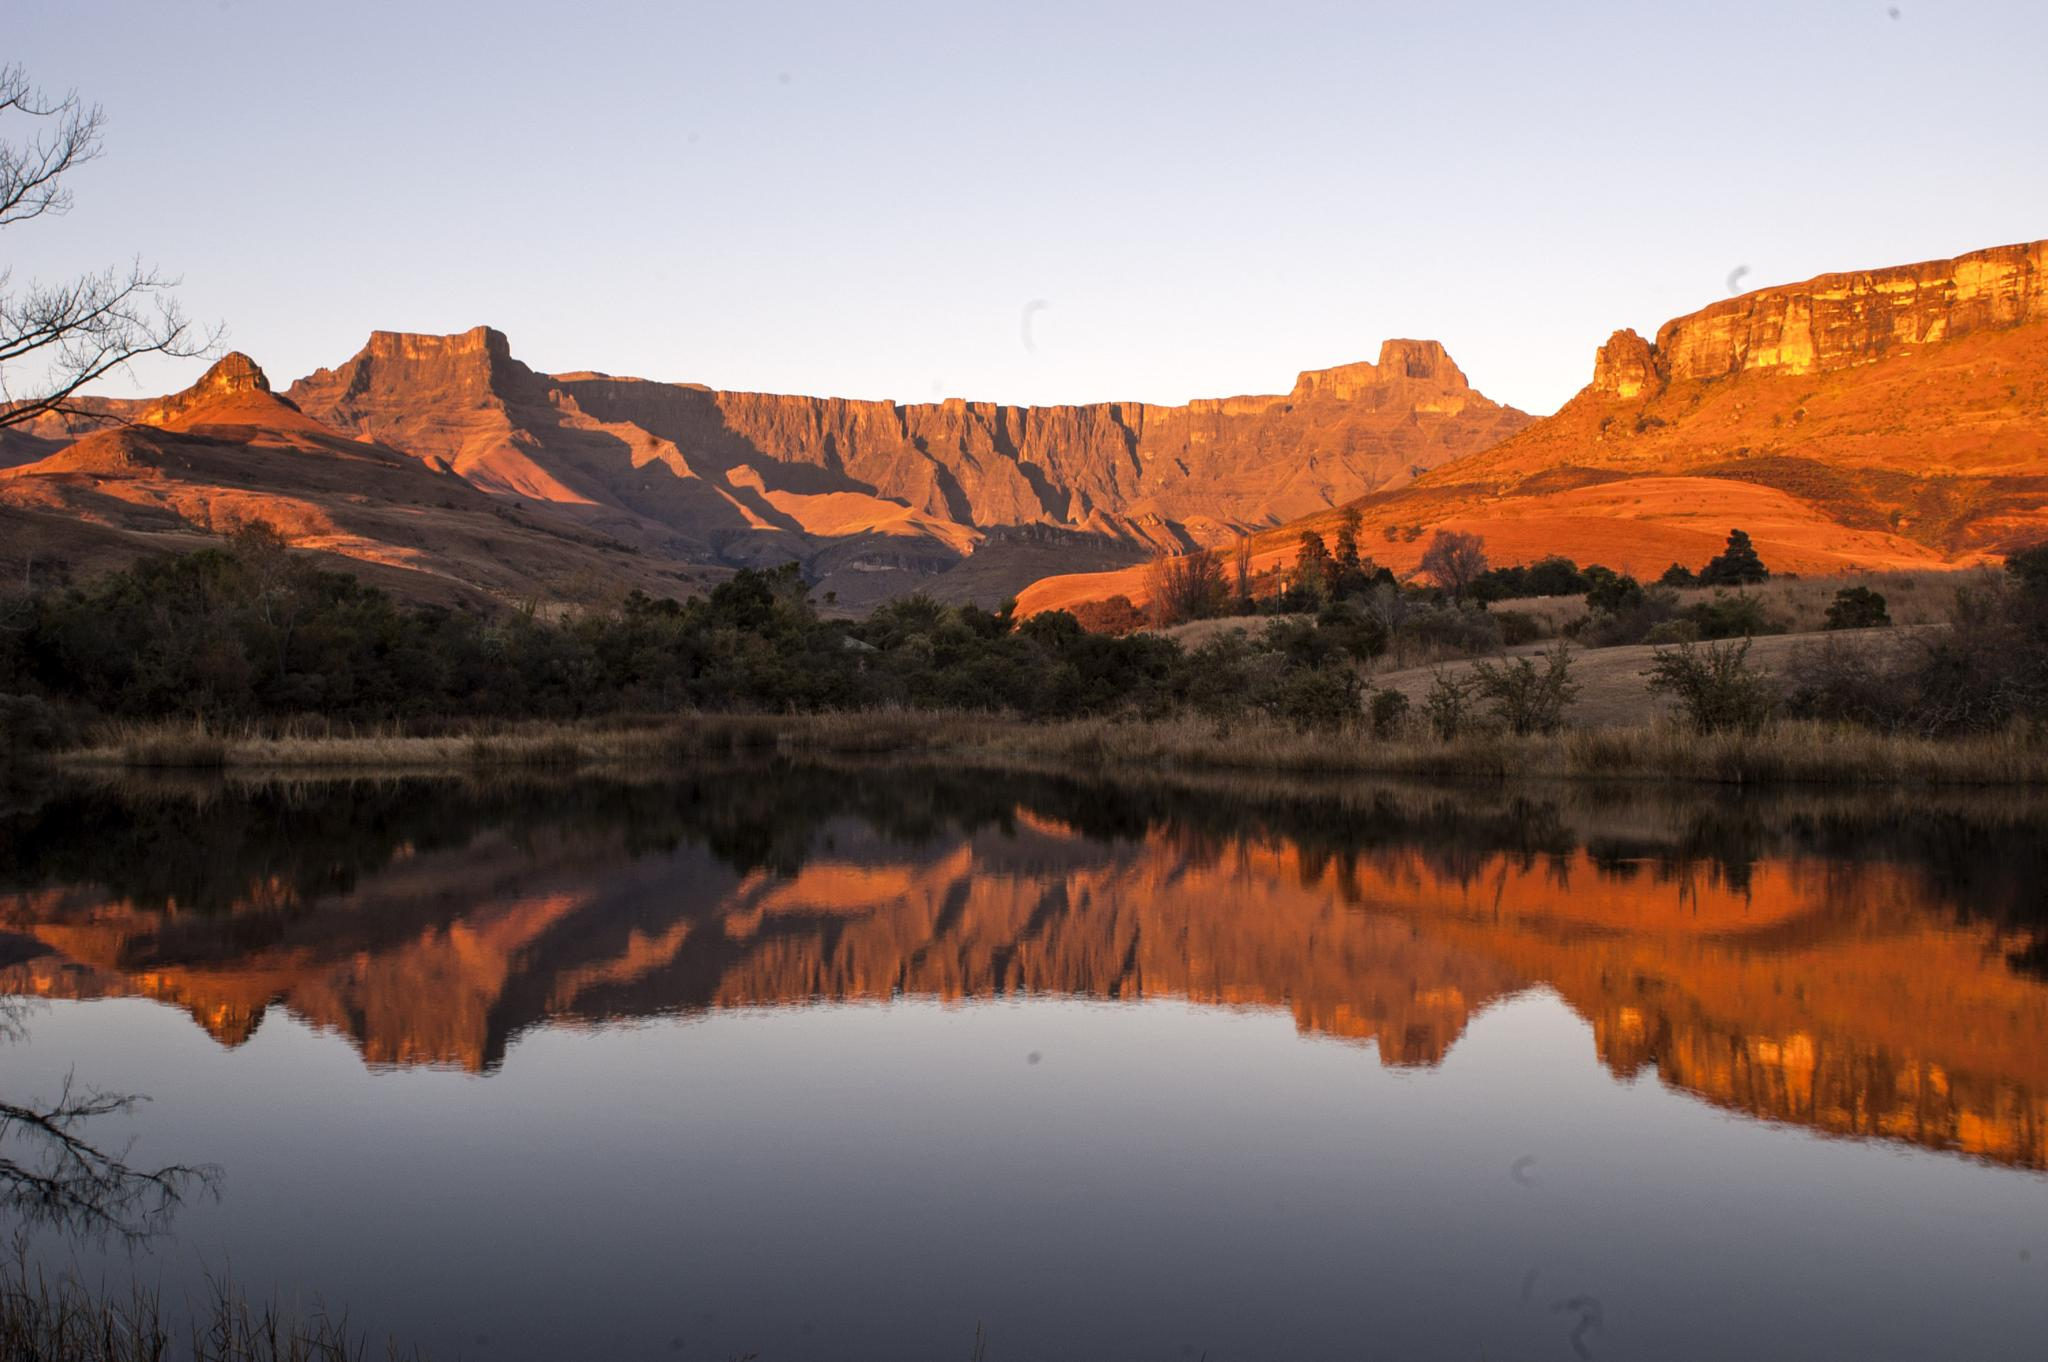 Ampitheatre in the KZN Drakensberg by Lee-Ann Conway